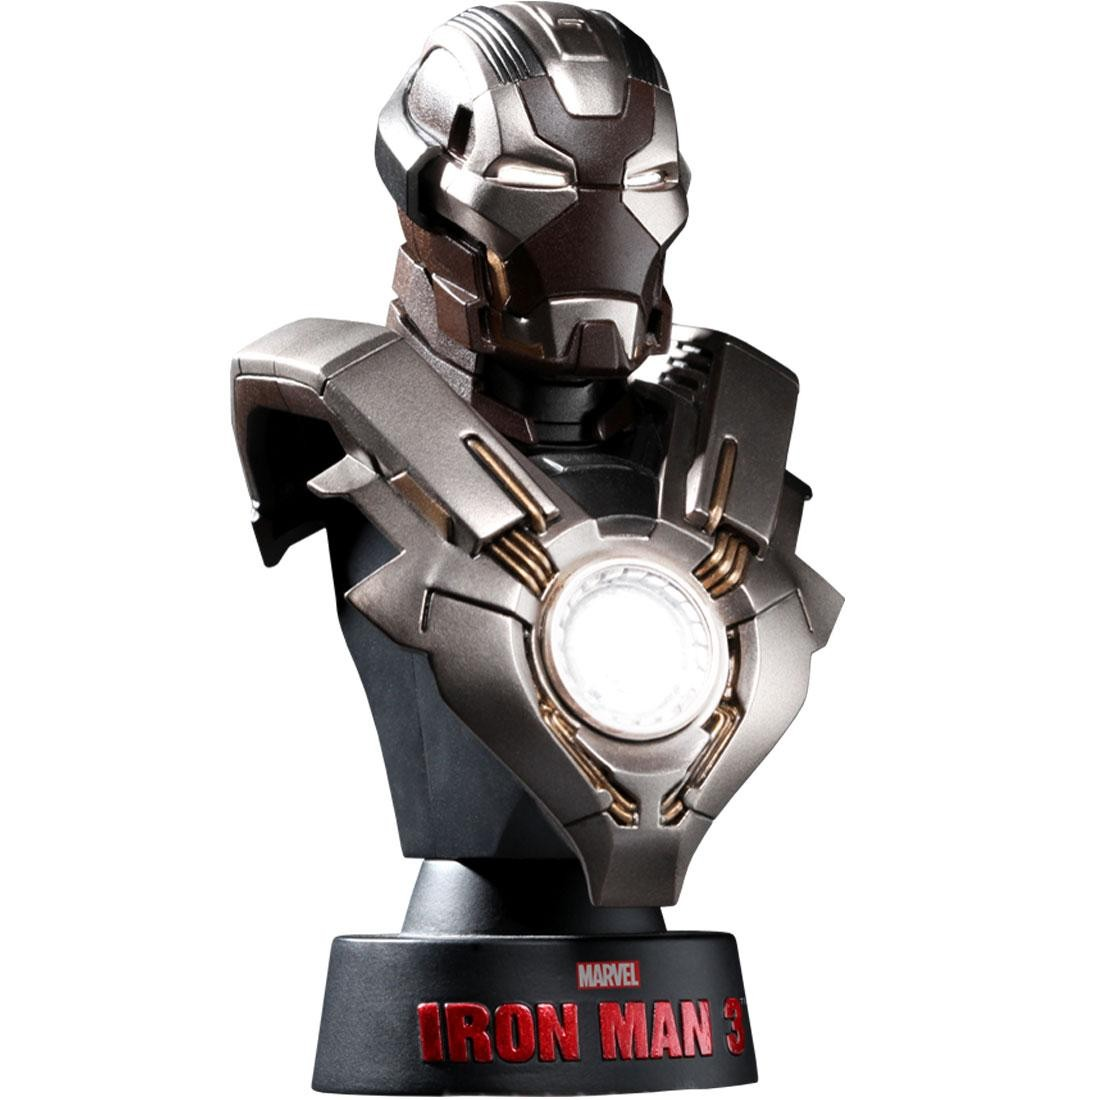 Hot Toys Iron Man 3 Iron Man Mark 24 1/6 Scale Bust Figure (silver)